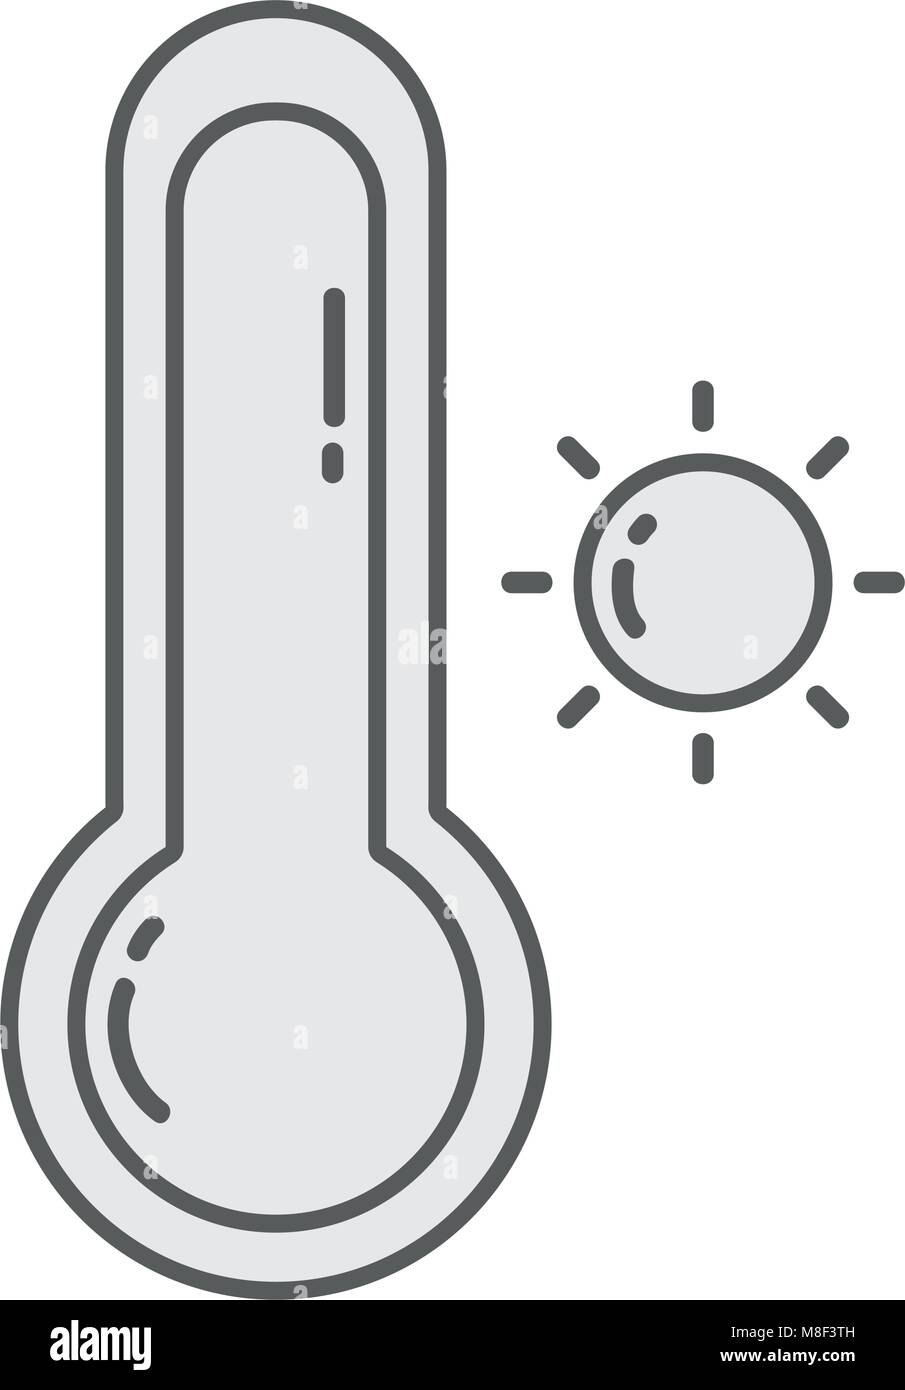 line sun with thermometer and hot weather symbol - Stock Image